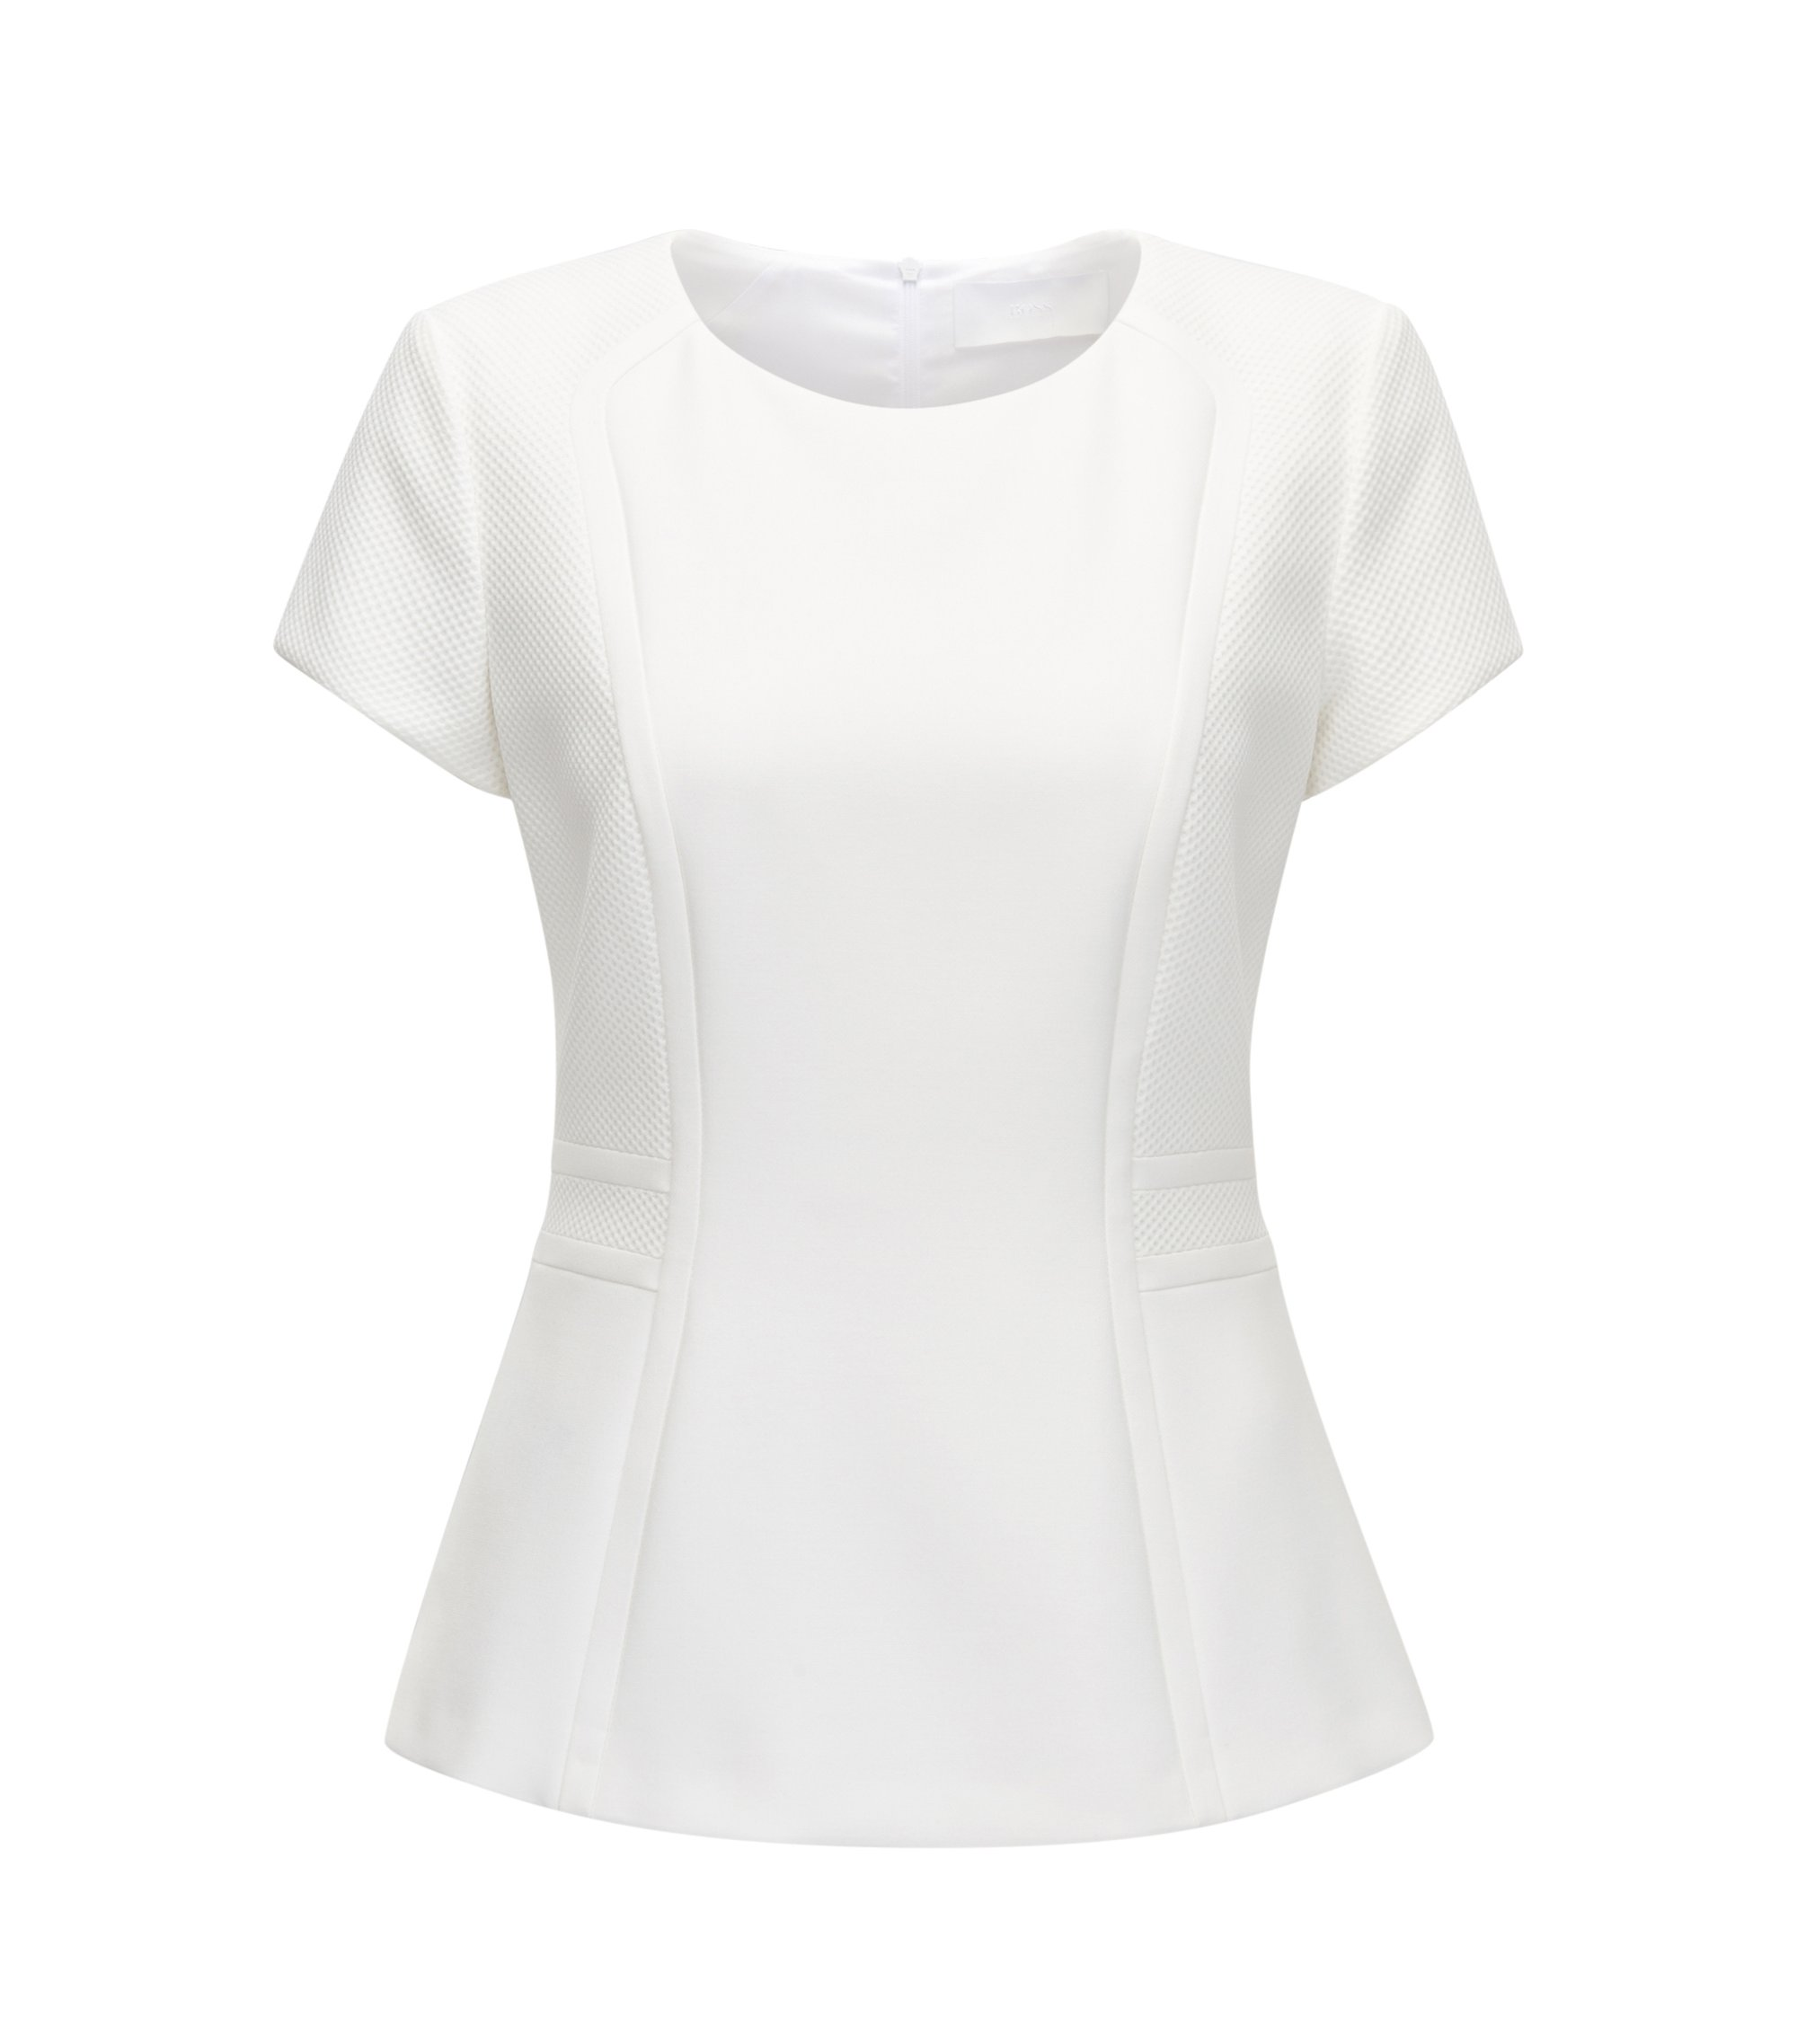 Paneled Peplum Top | Idama, Natural